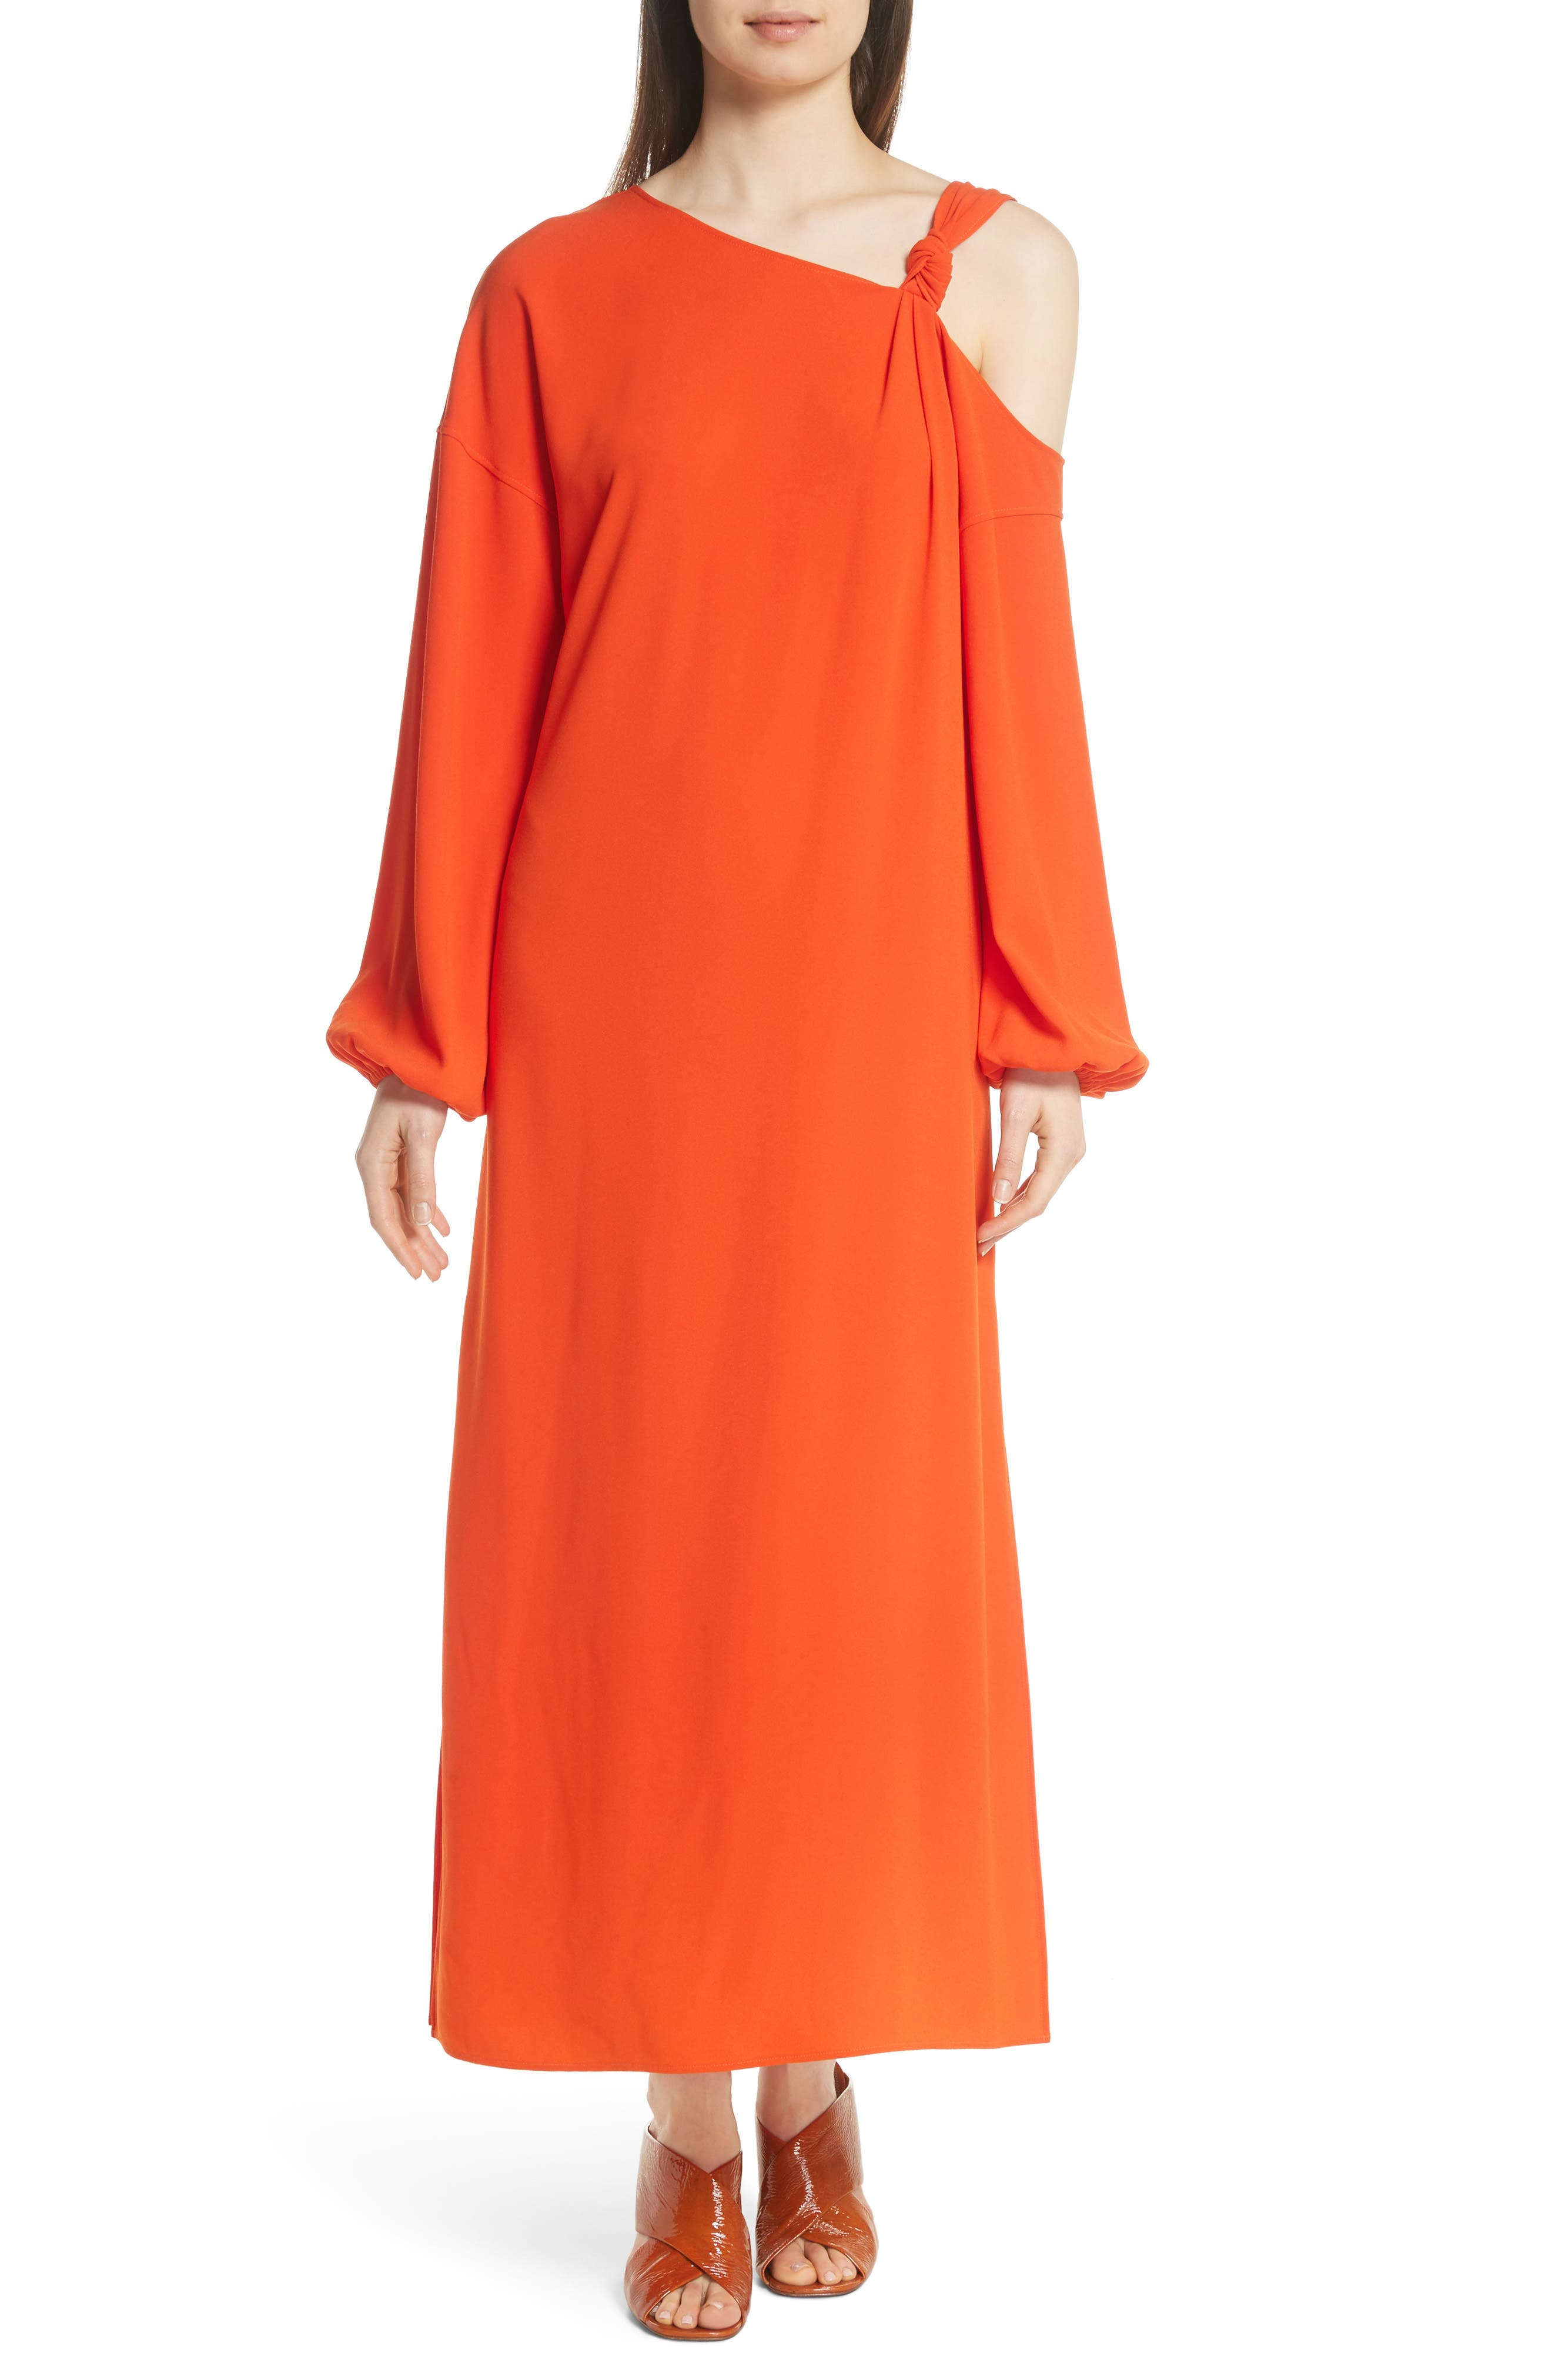 Elizabeth and James Shontae One-Shoulder Maxi Dress